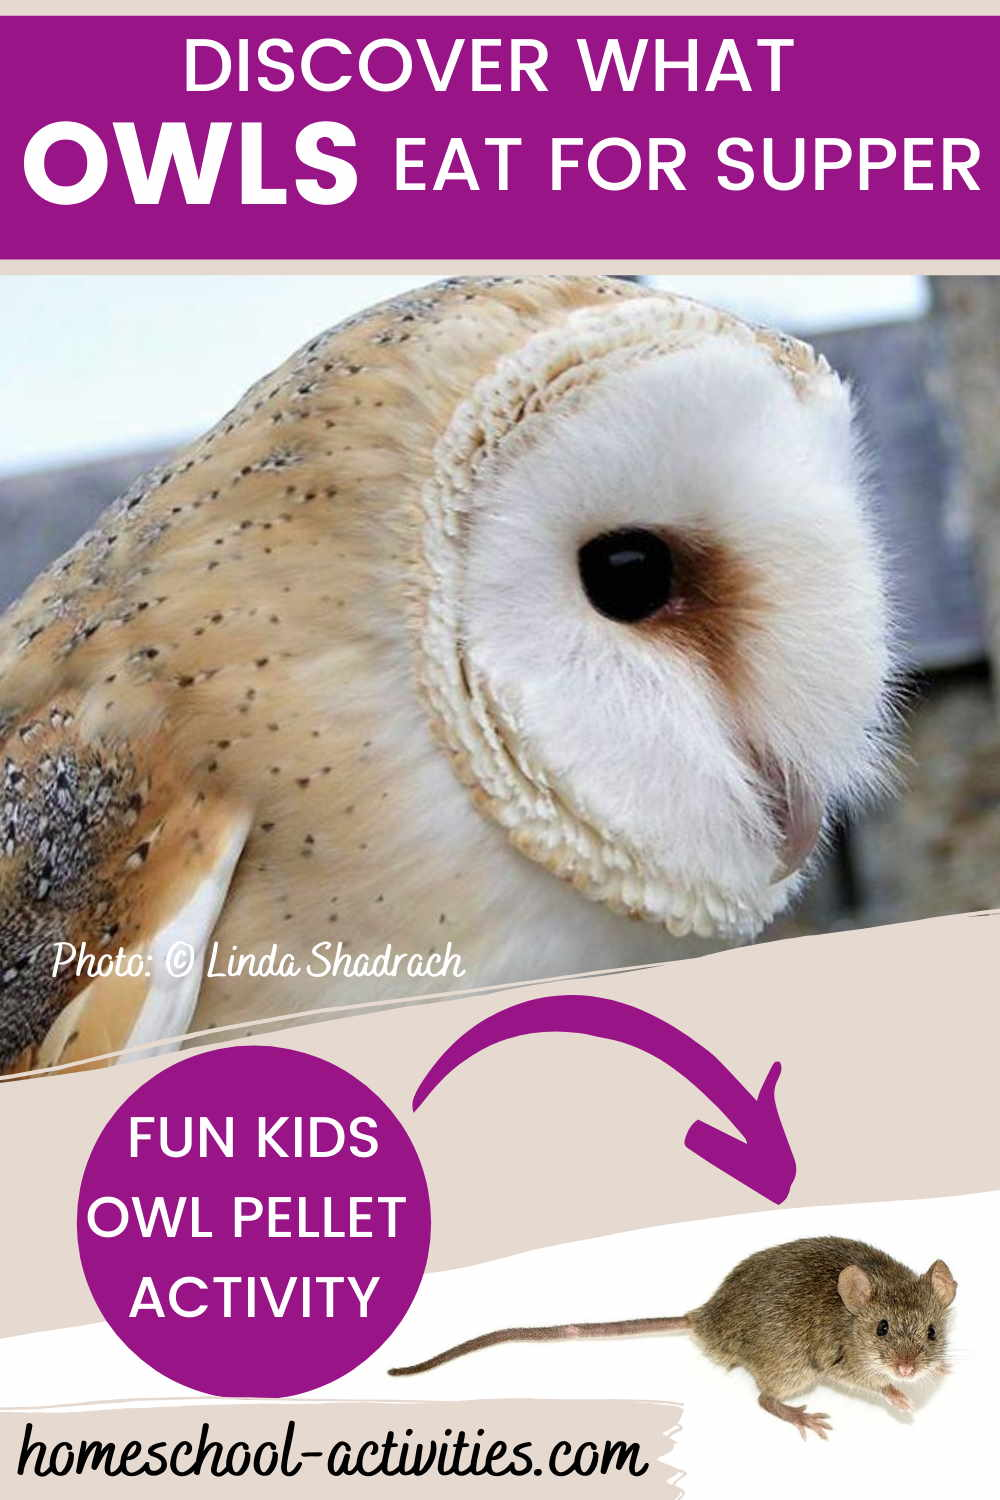 Owl pellet dissection activities for kids